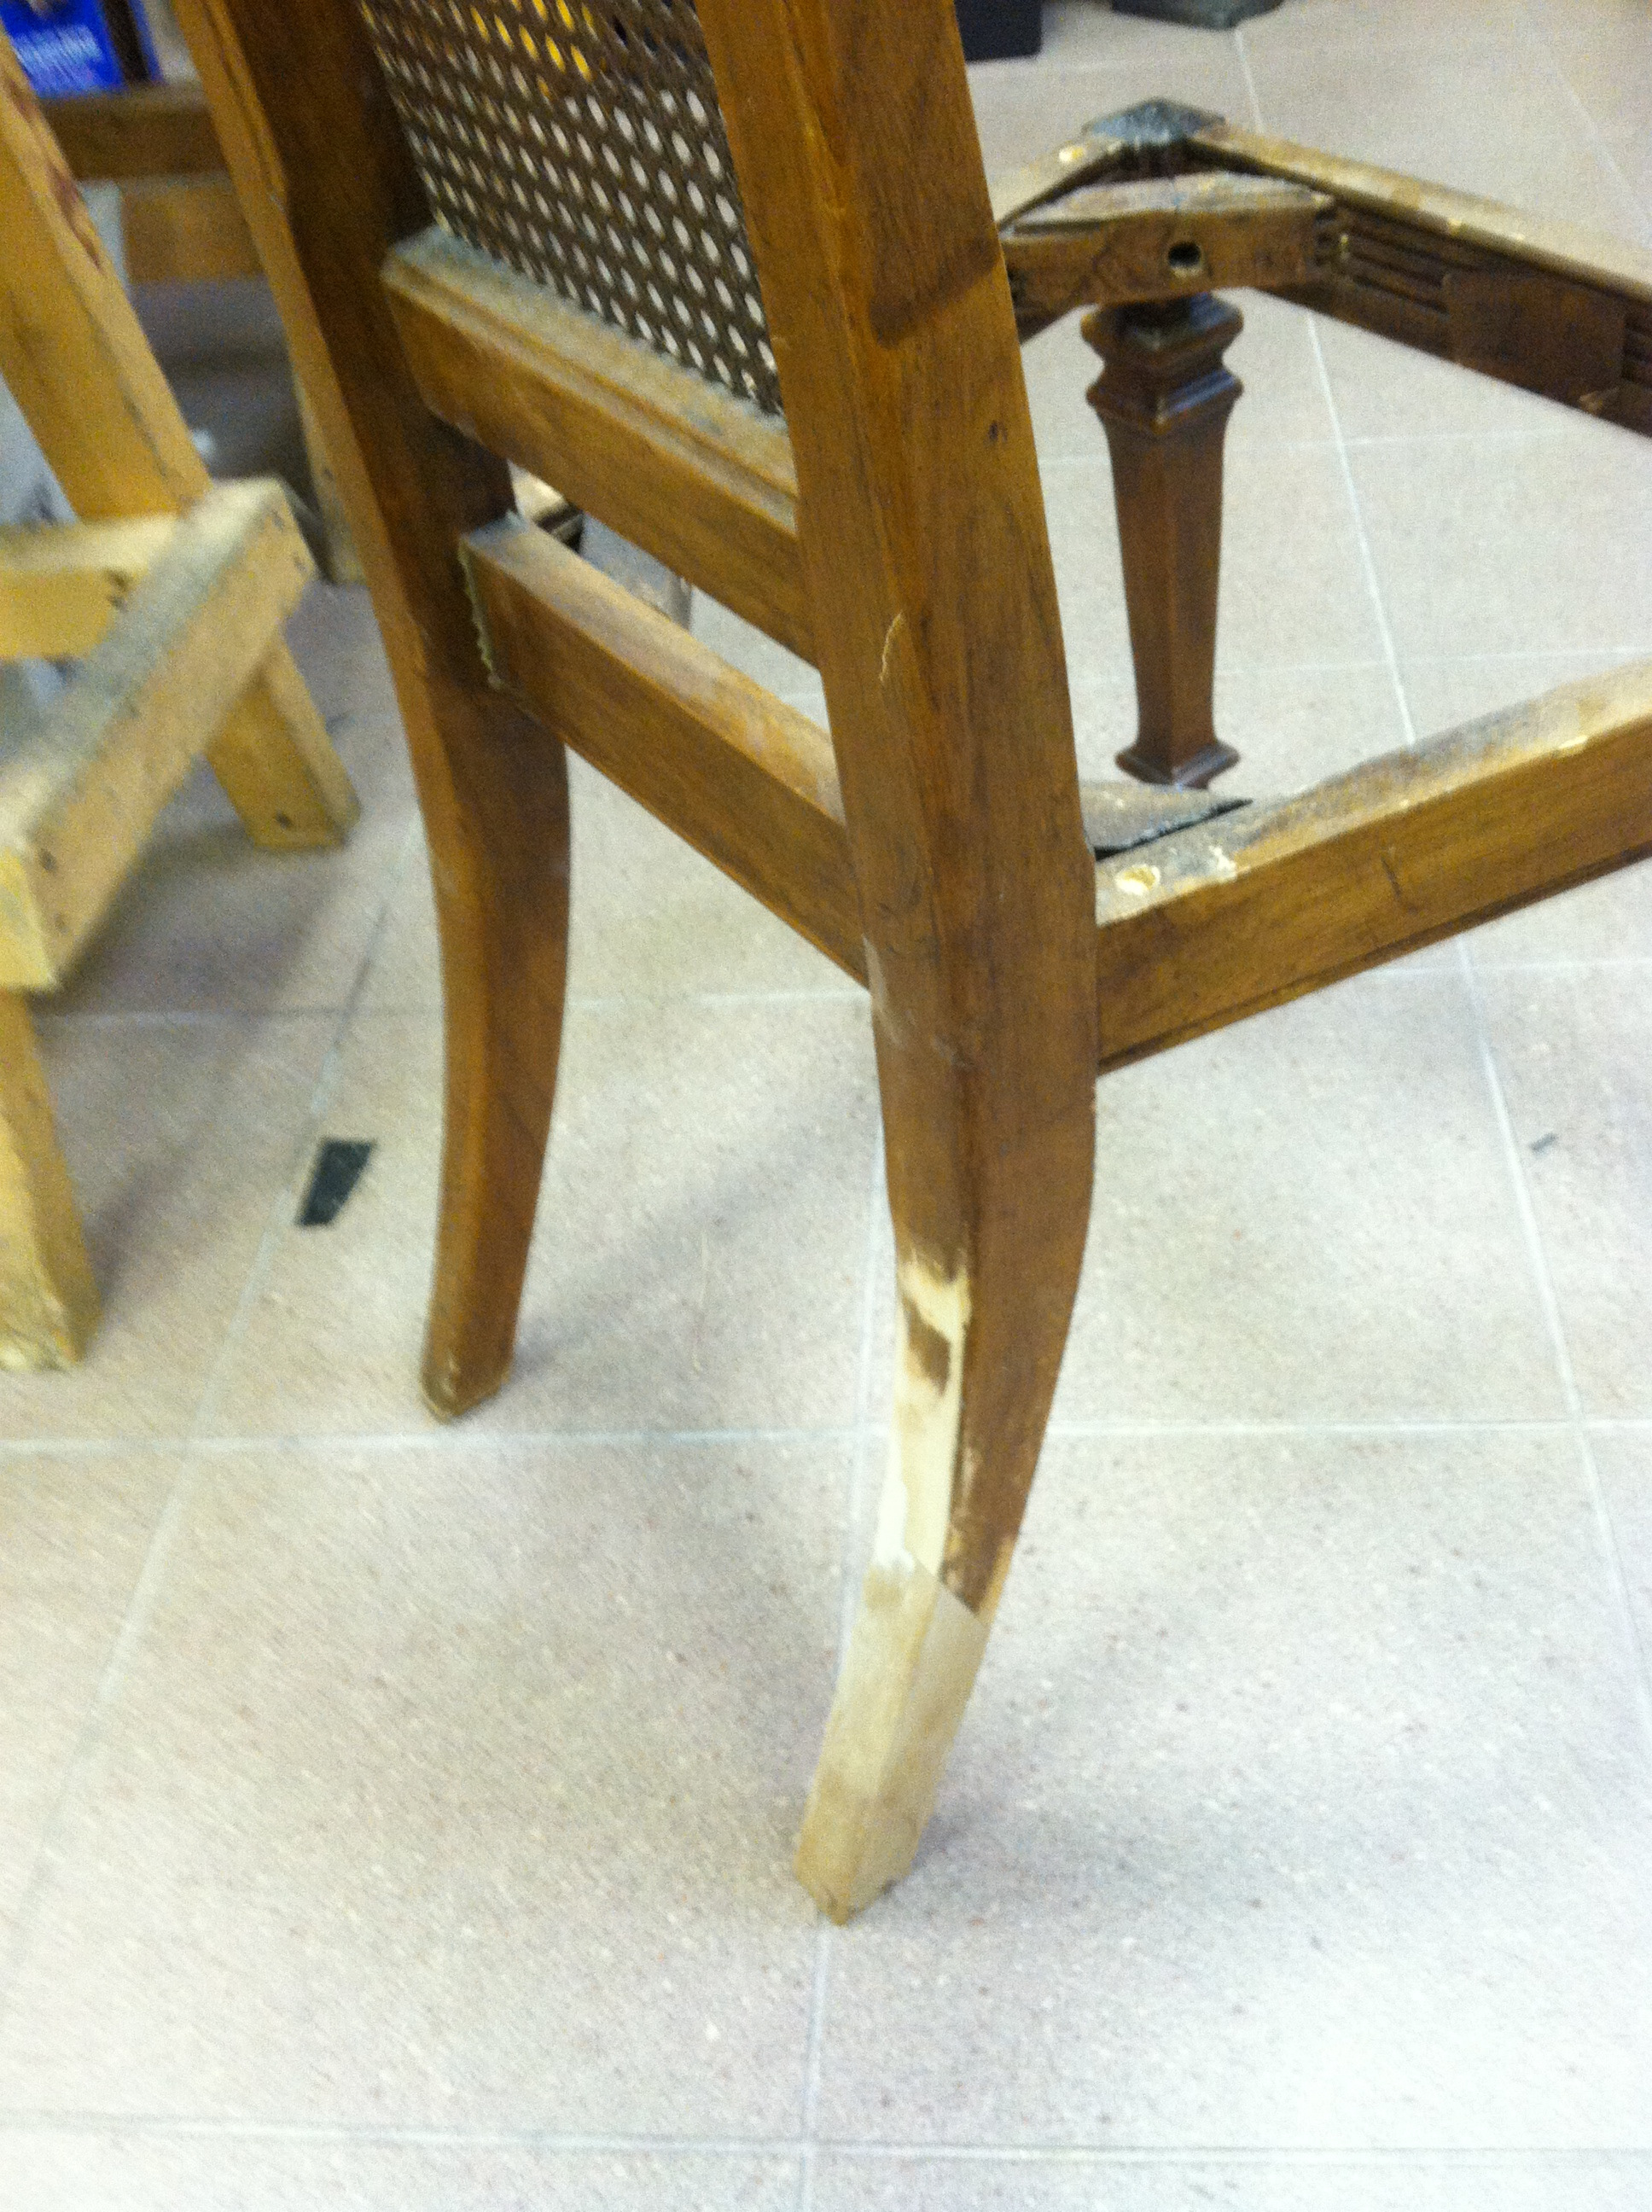 Antique Furniture Repair Nyc Unique Wood Restoration and Chair Repair L&i Skippy Inc Upholstery